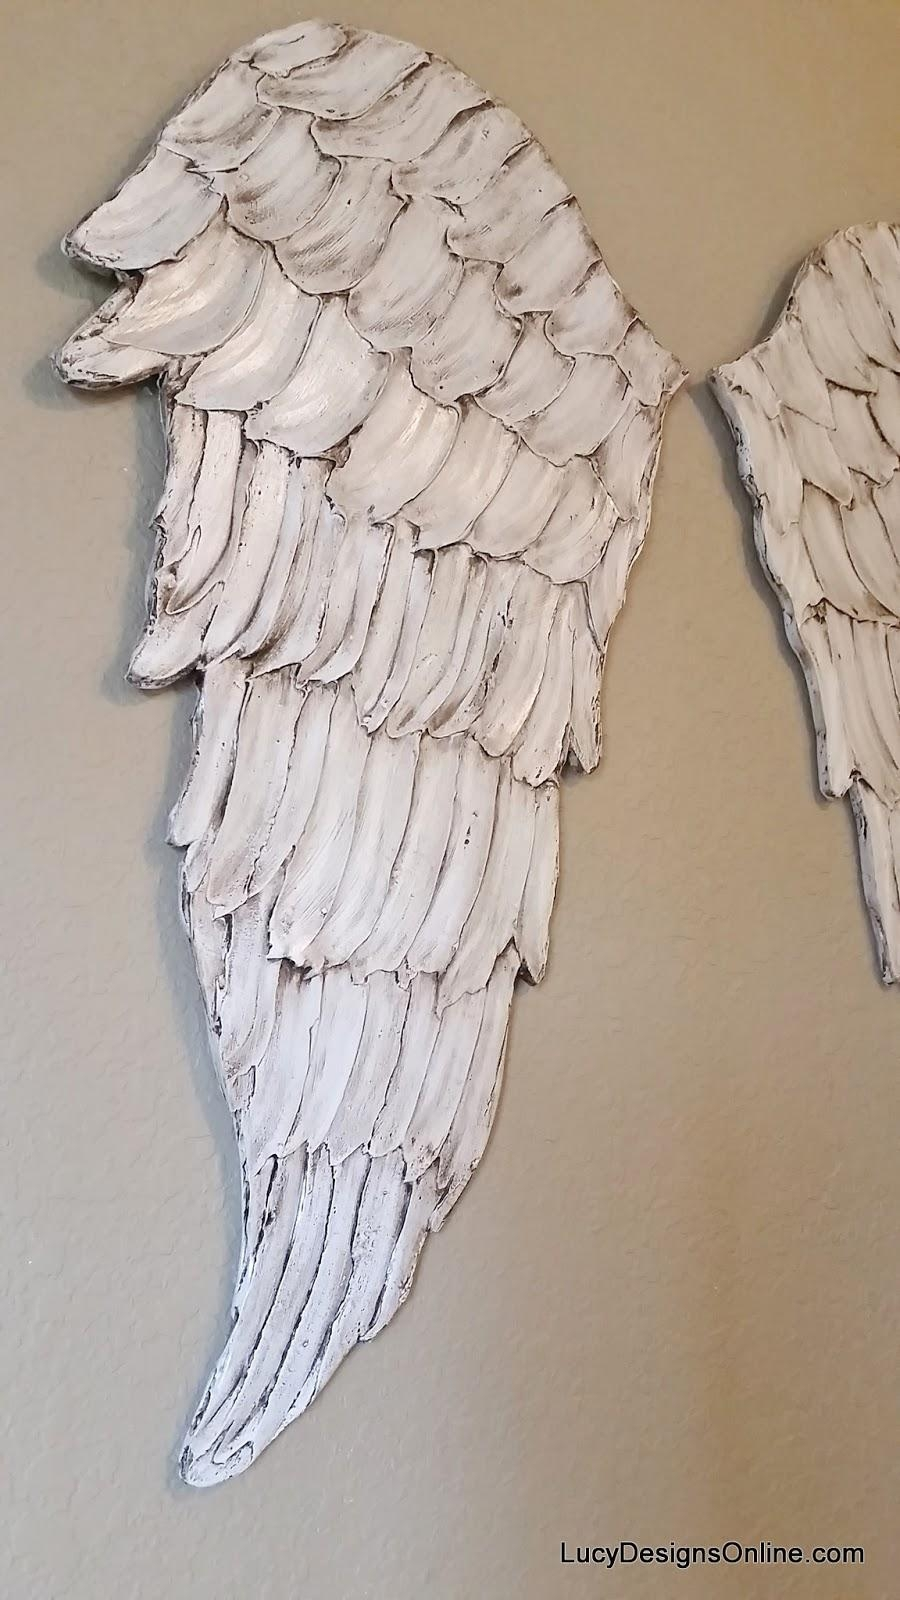 Angel Wings Textured Wood, Wall Art, Carved Wood Look, Angel Wing Pertaining To Angel Wing Wall Art (View 7 of 20)